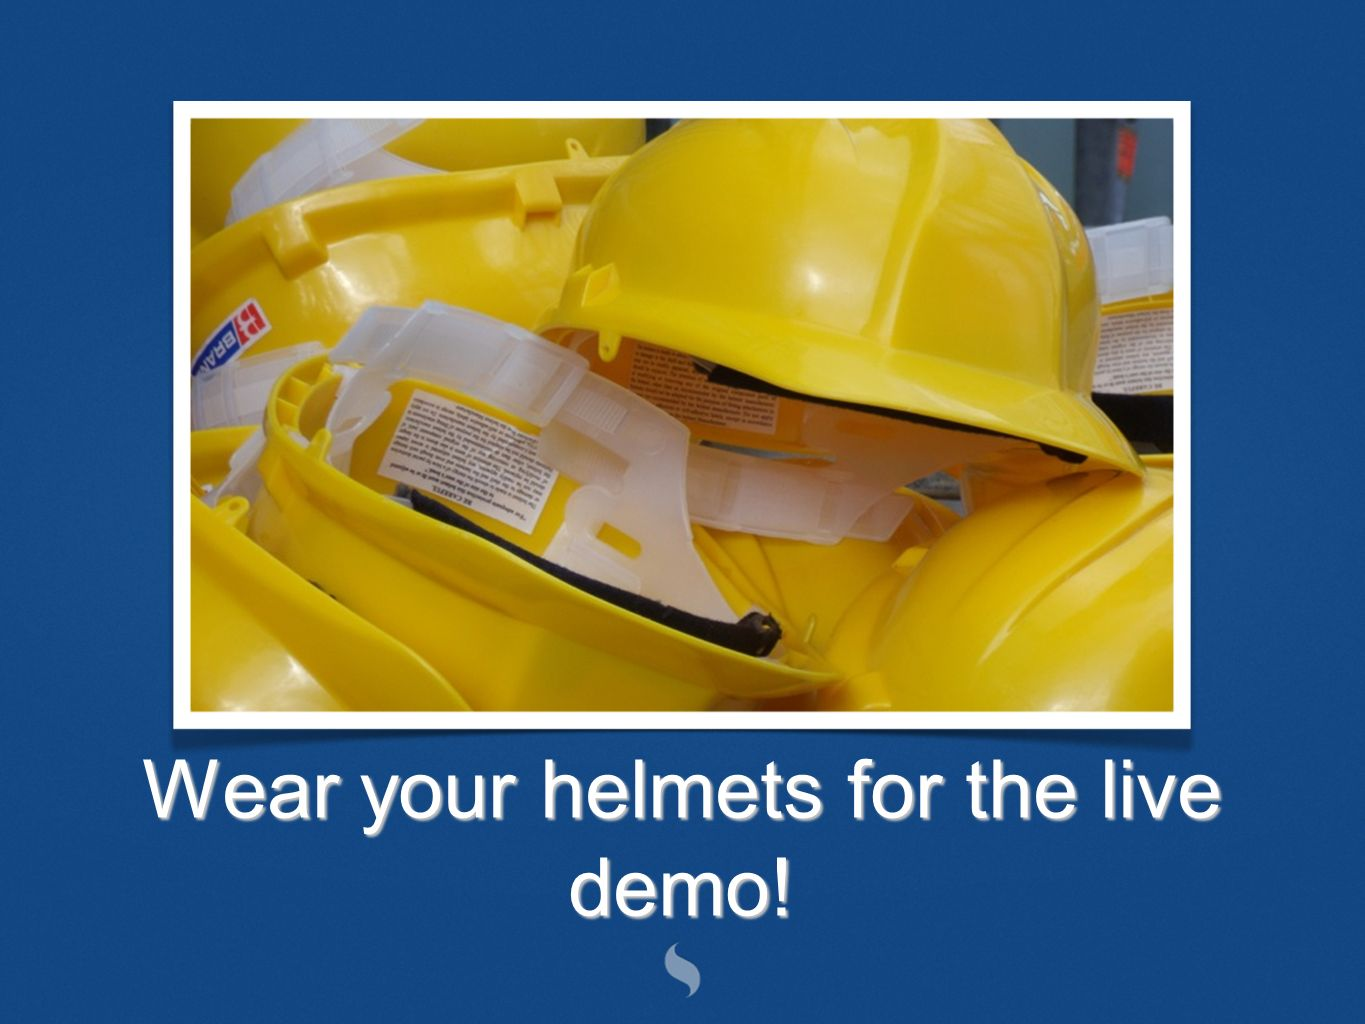 Wear your helmets for the live demo!